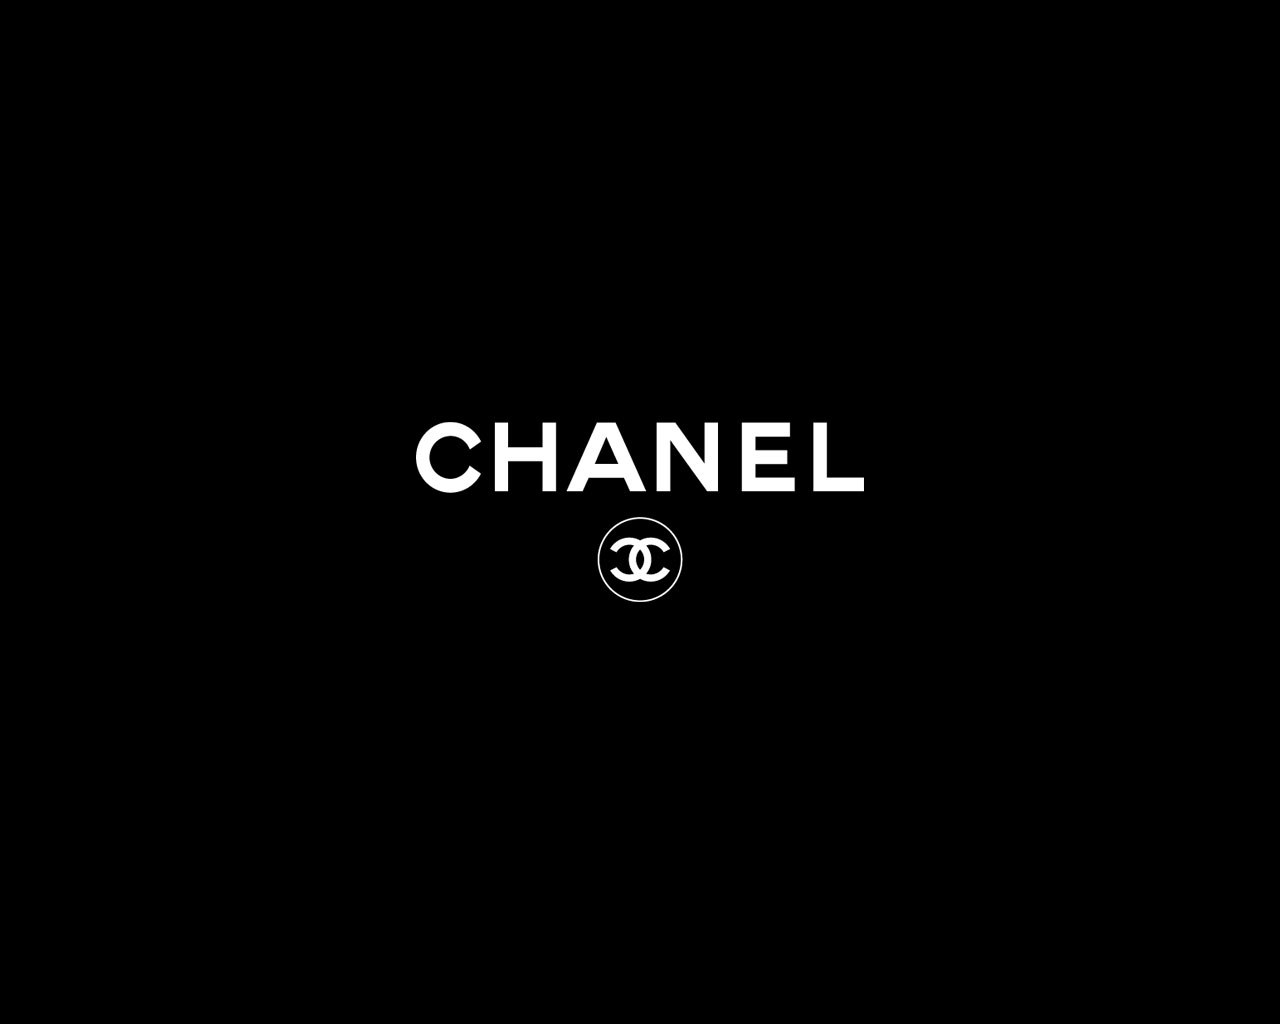 chanel logo wallpaper 31246